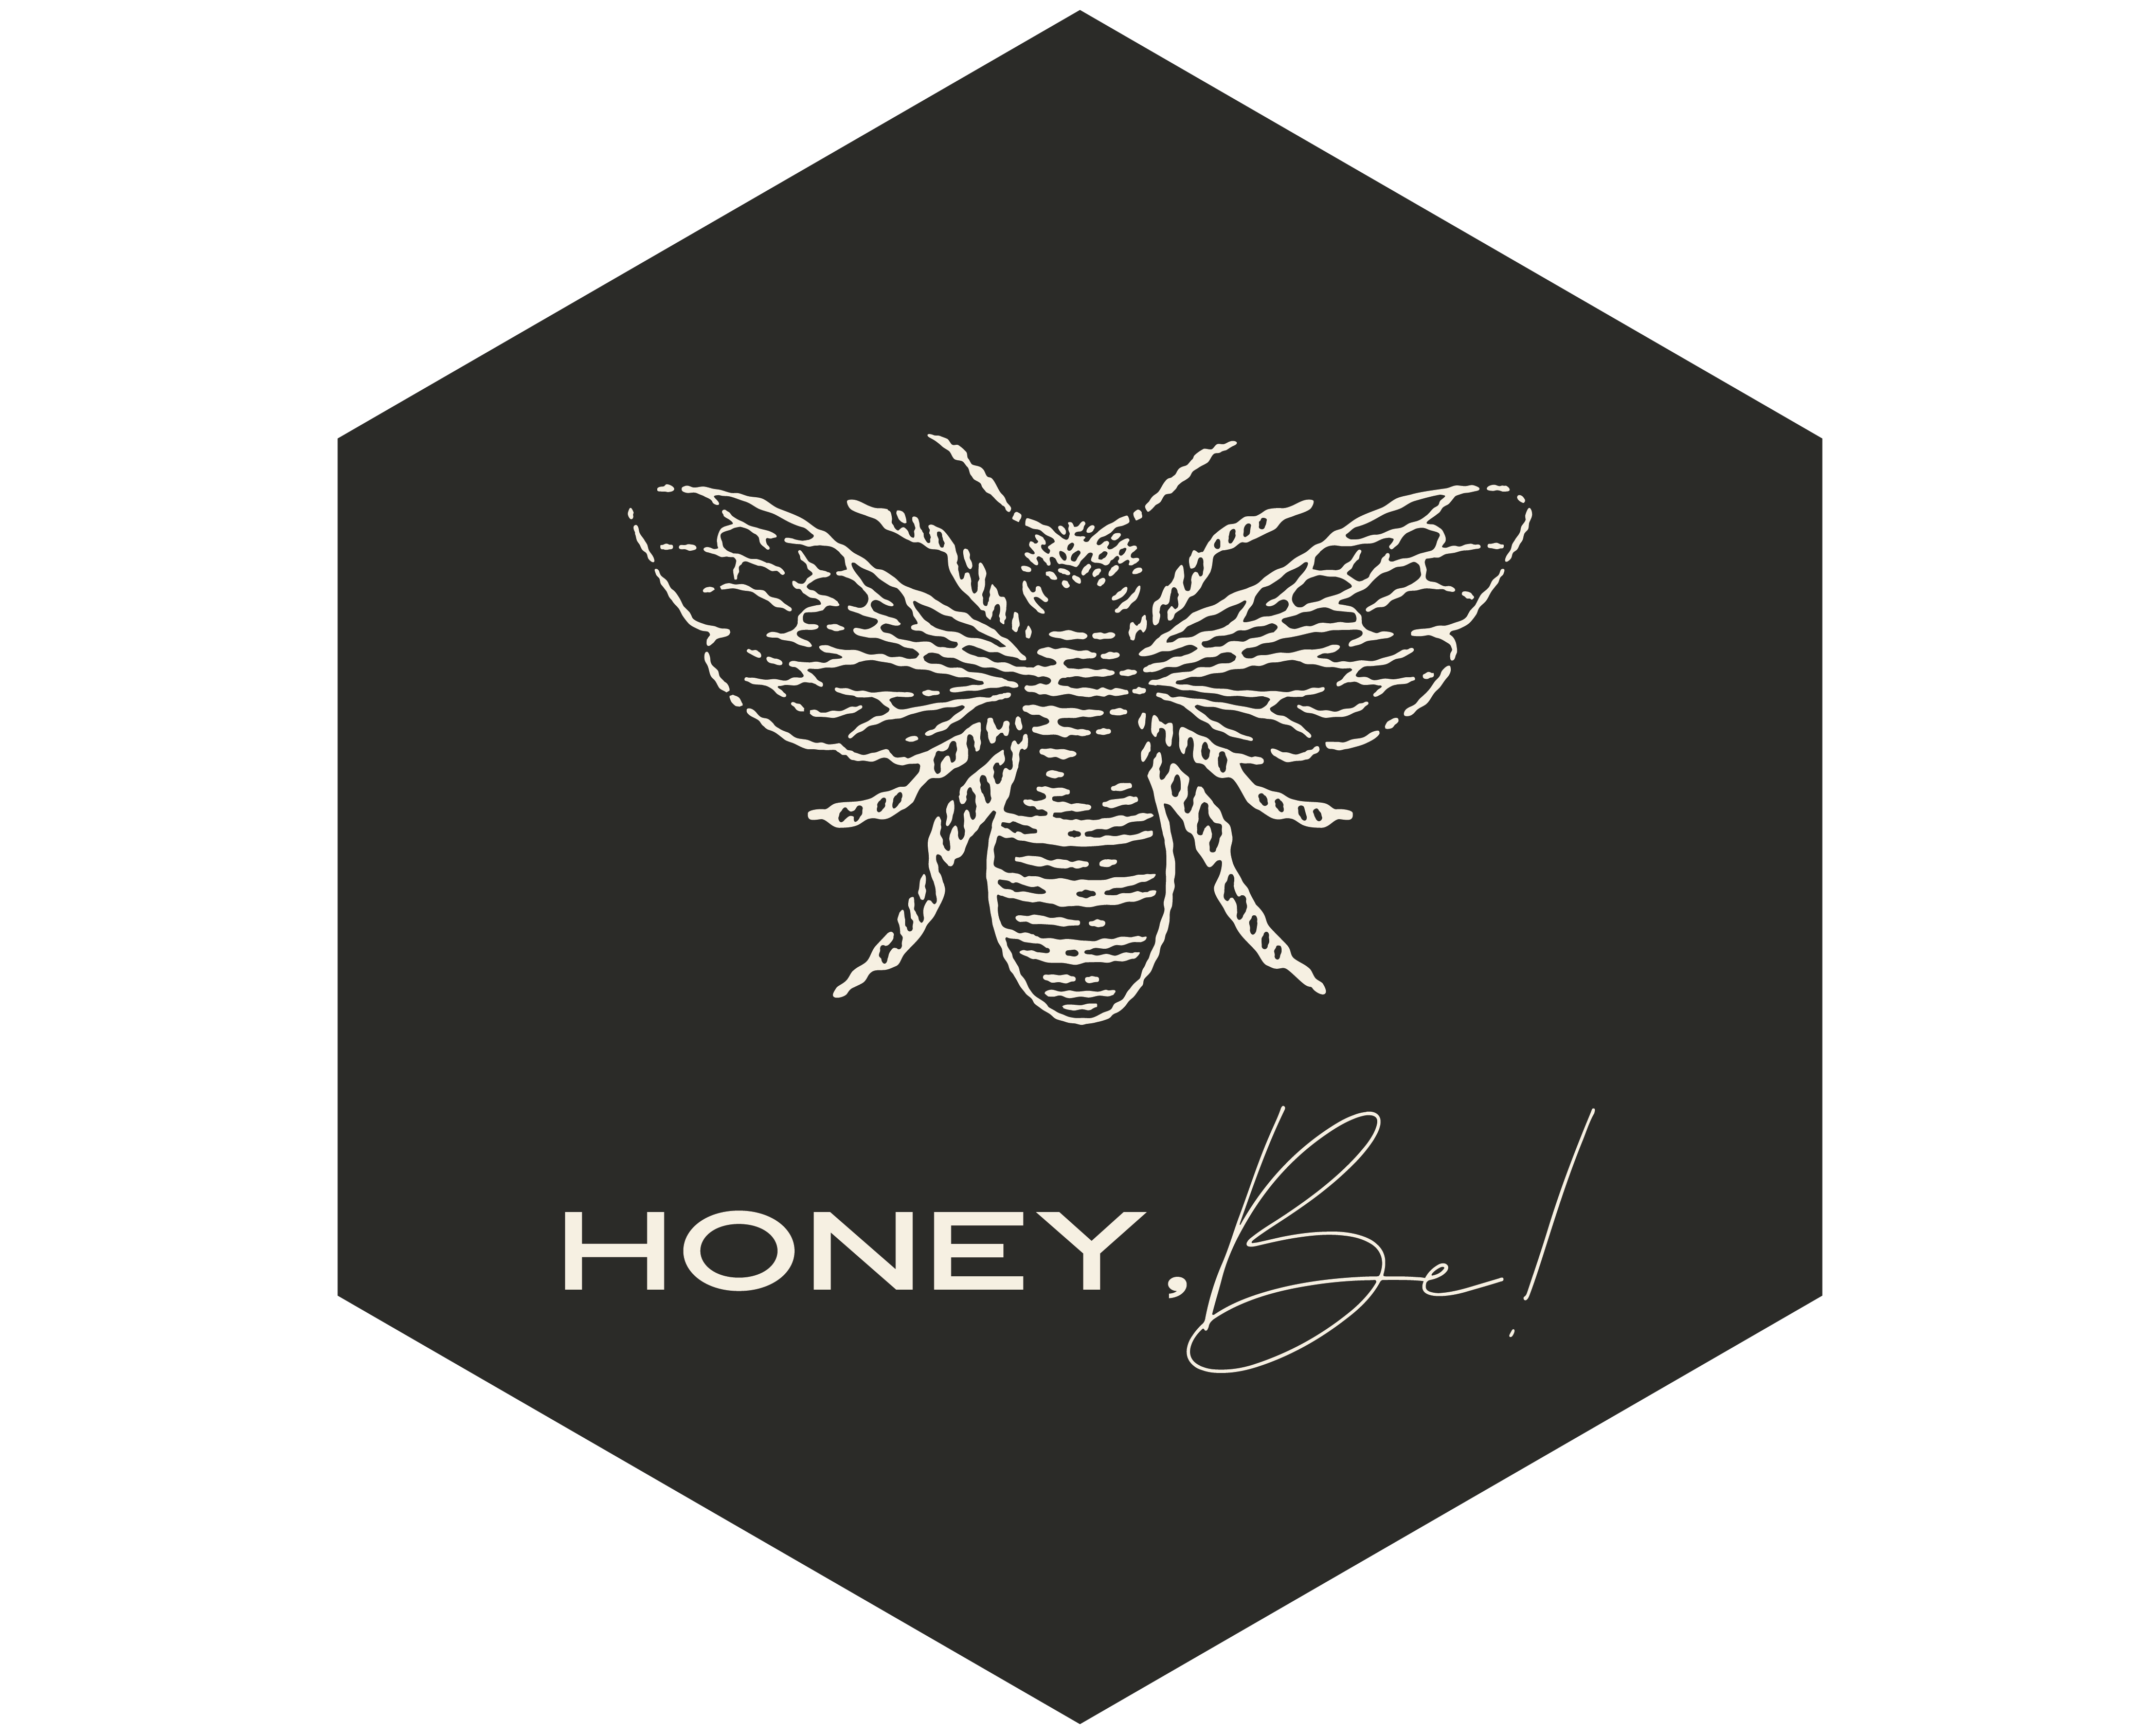 Strategic Brand Design | Fiona Gobbo Creative | Designing a luxury brand identity for brands and businesses